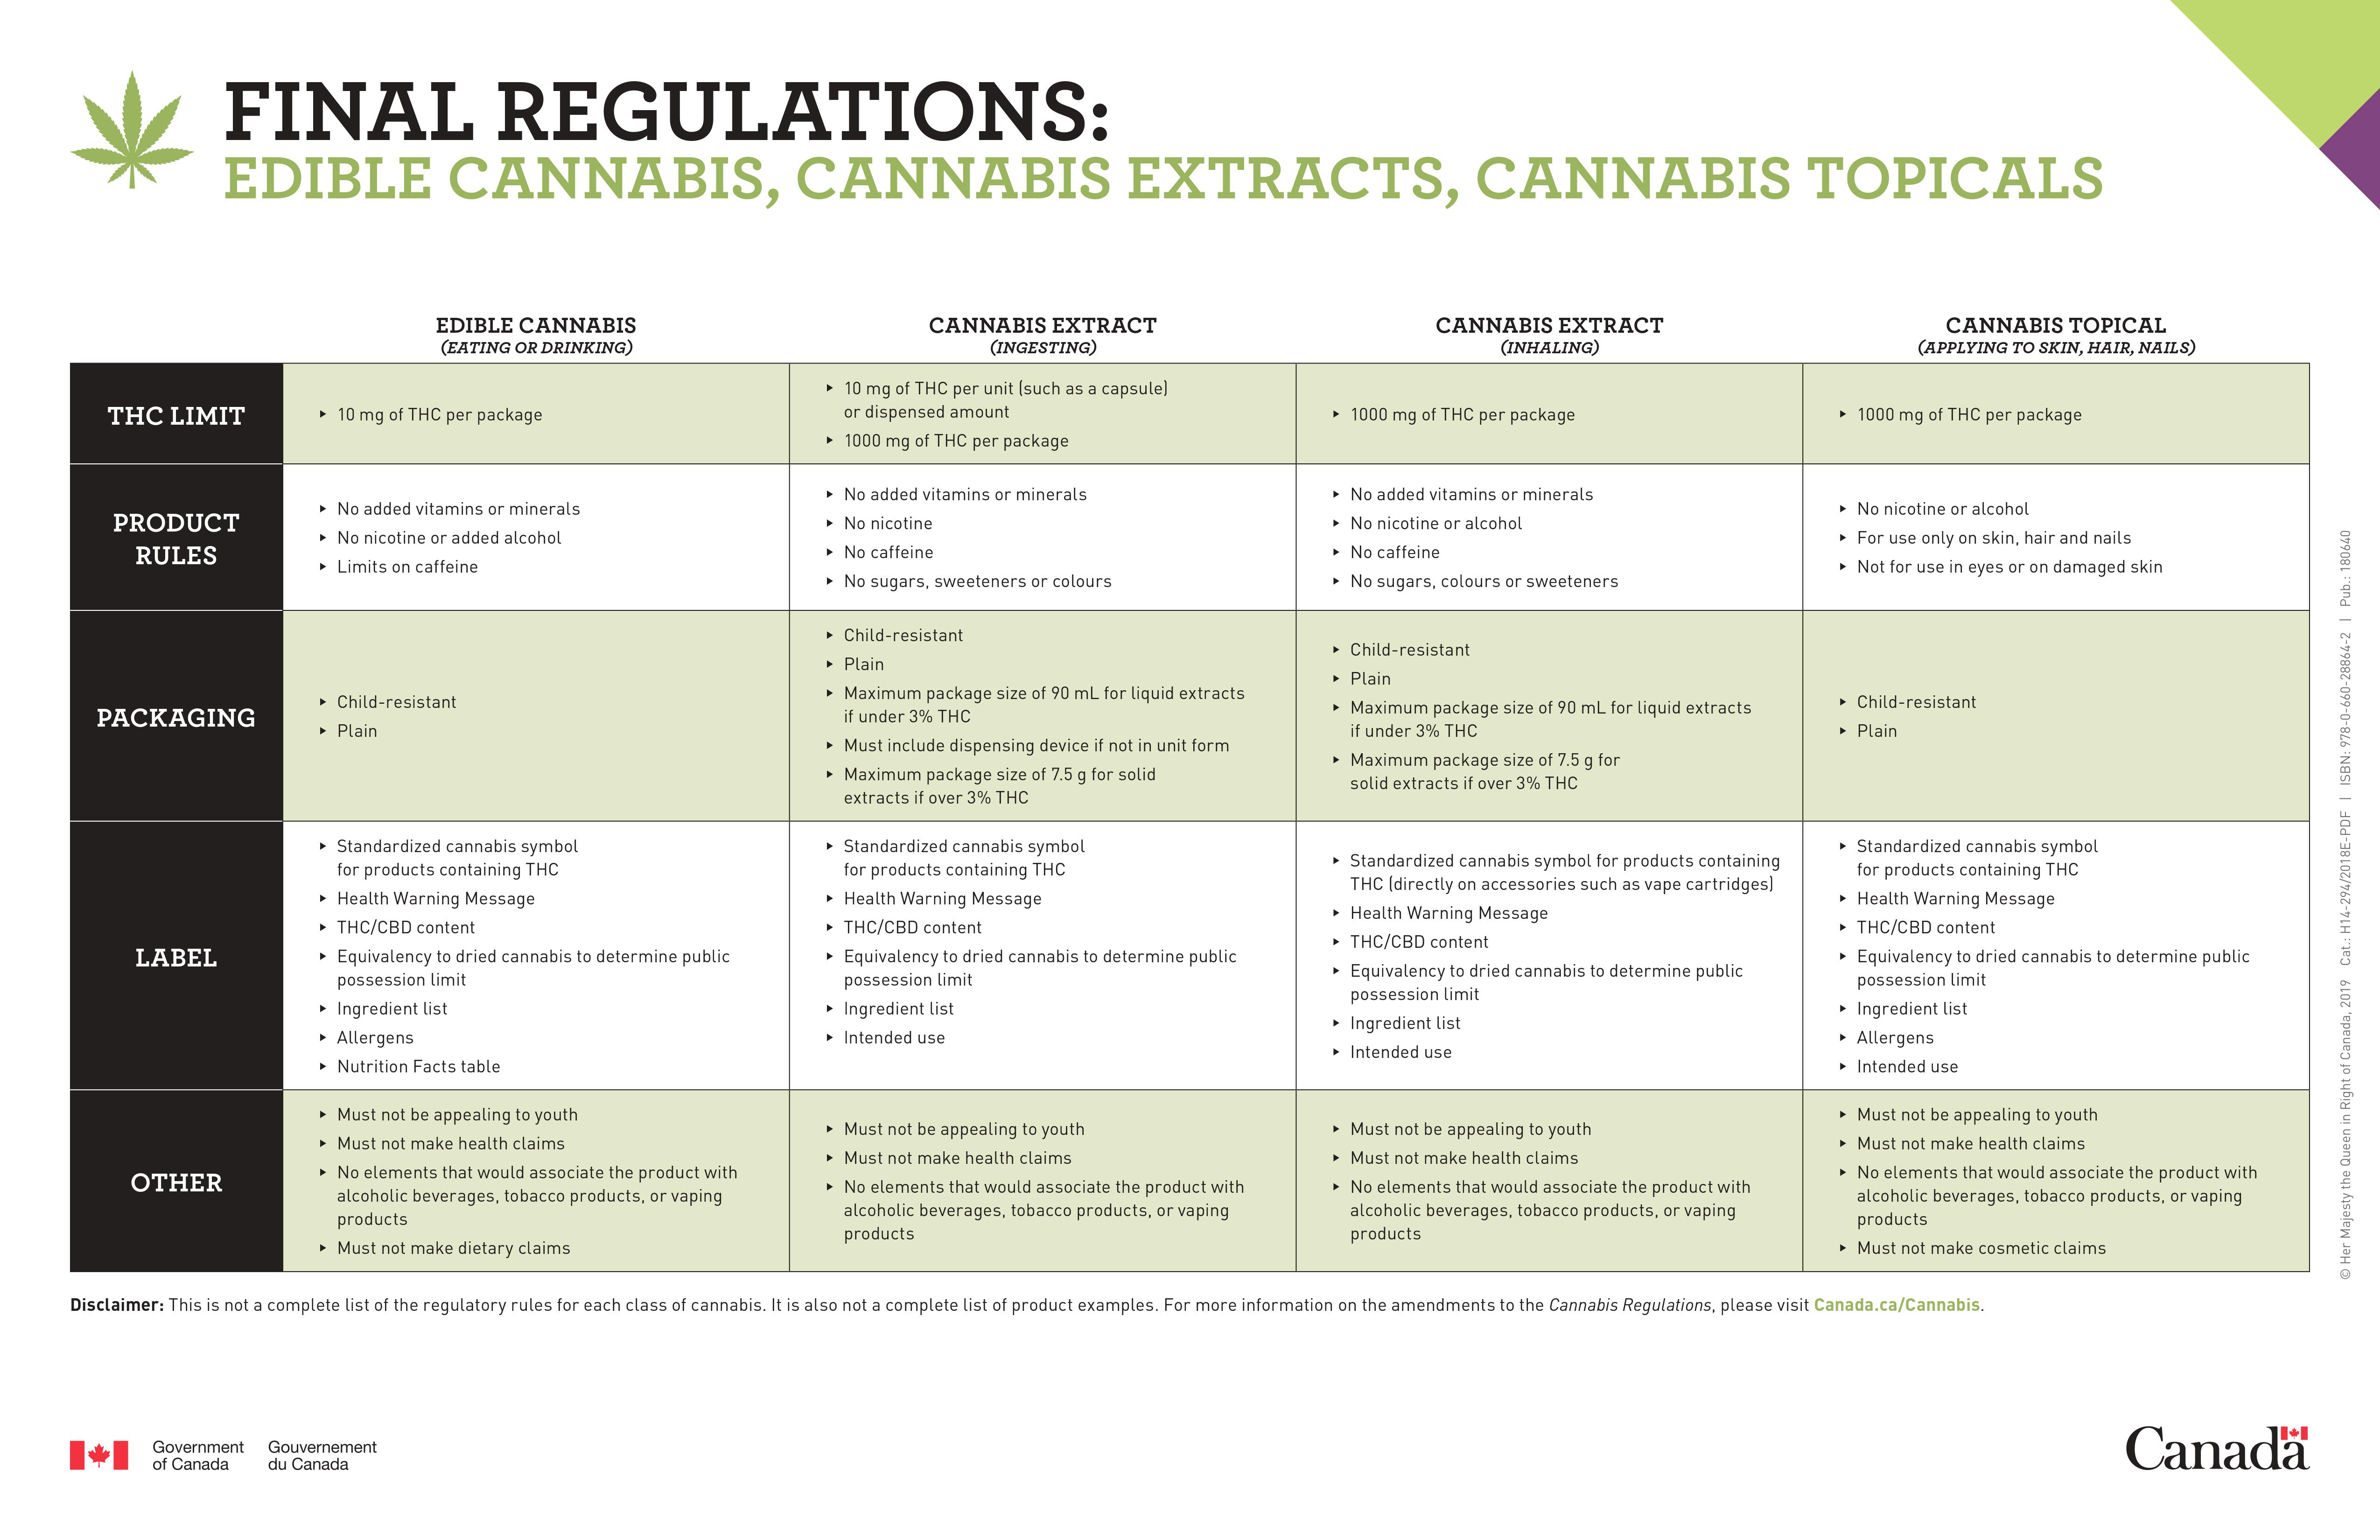 Health Canada Final regulations: Edible cannabis, cannabis extracts, cannabis topicals.